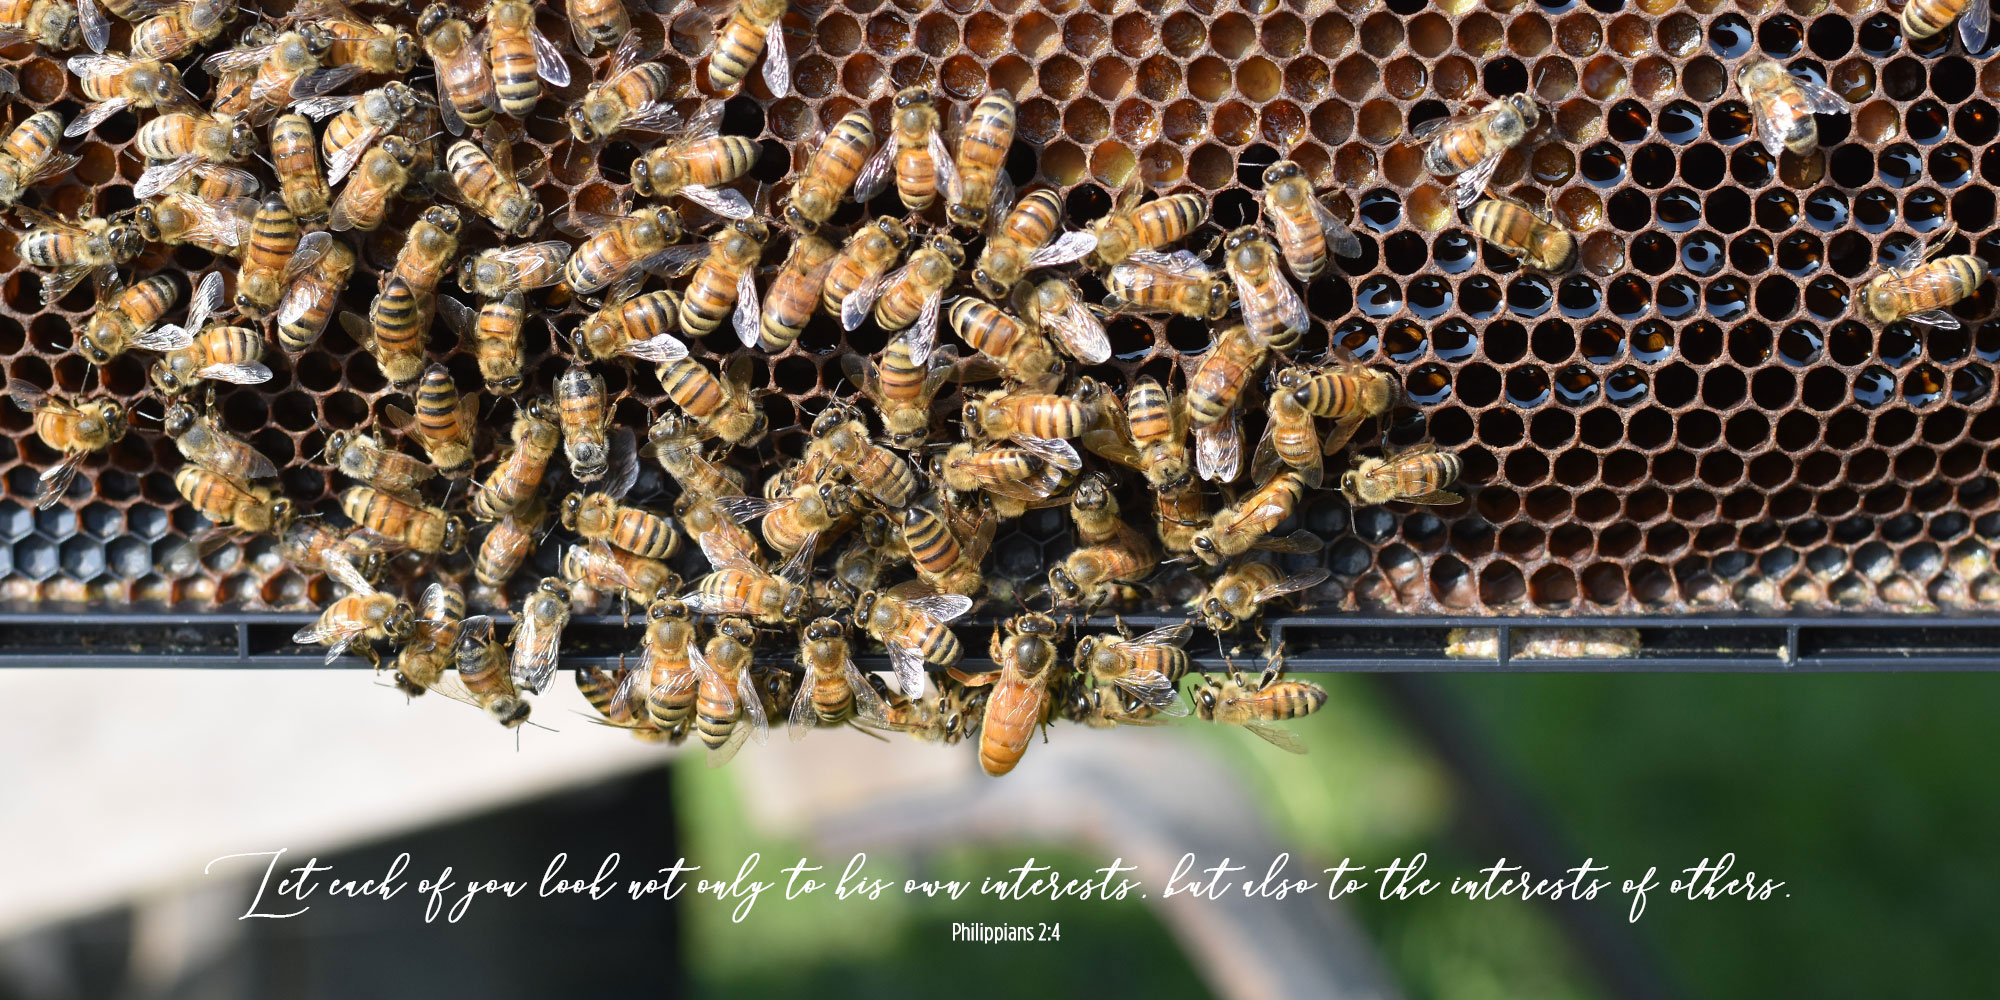 Bees Motivate Gratitude and Giving